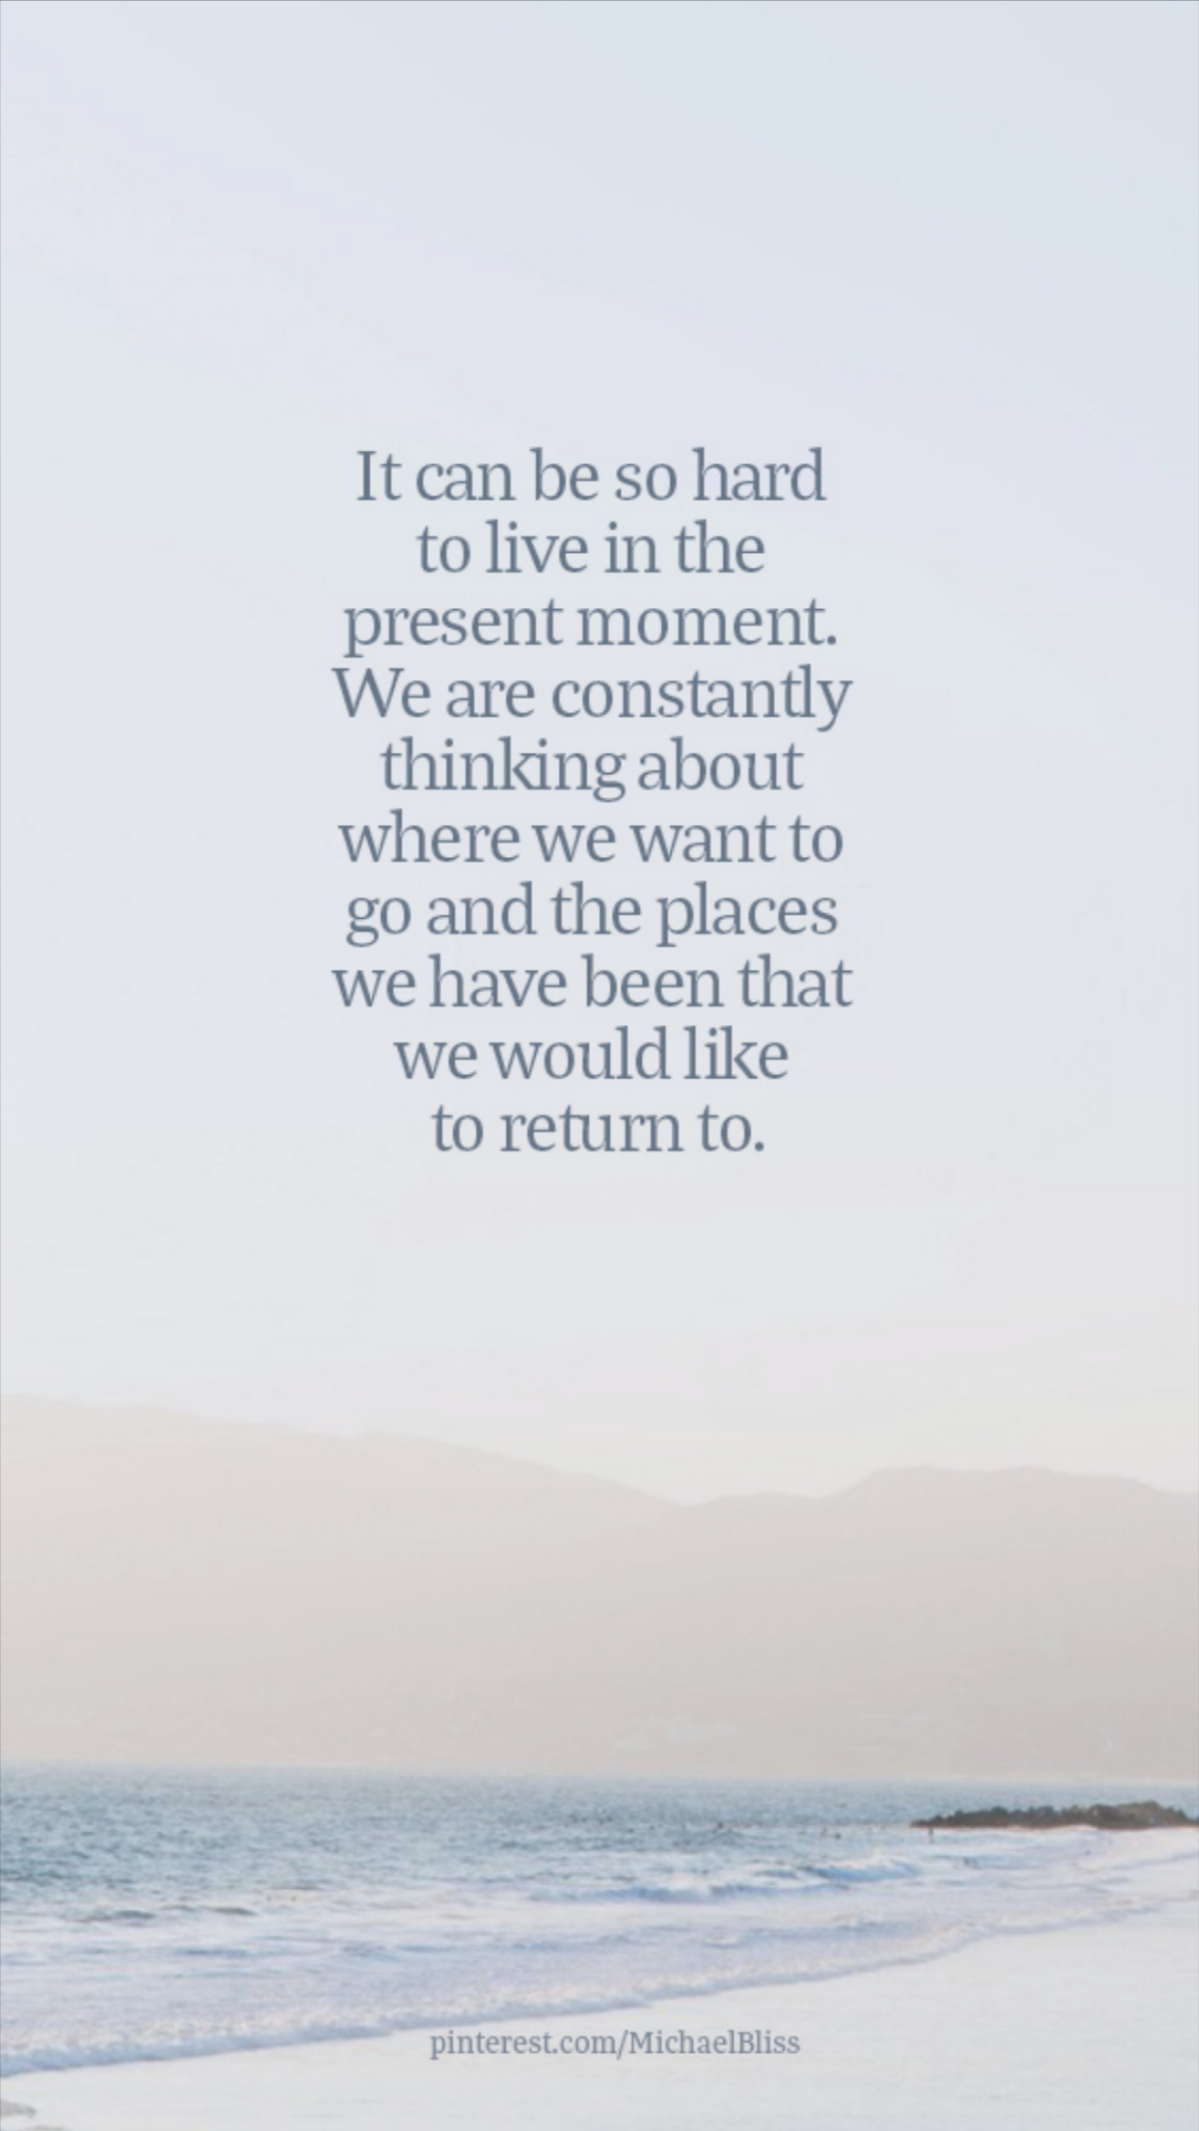 It can be so hard to live in the present moment.